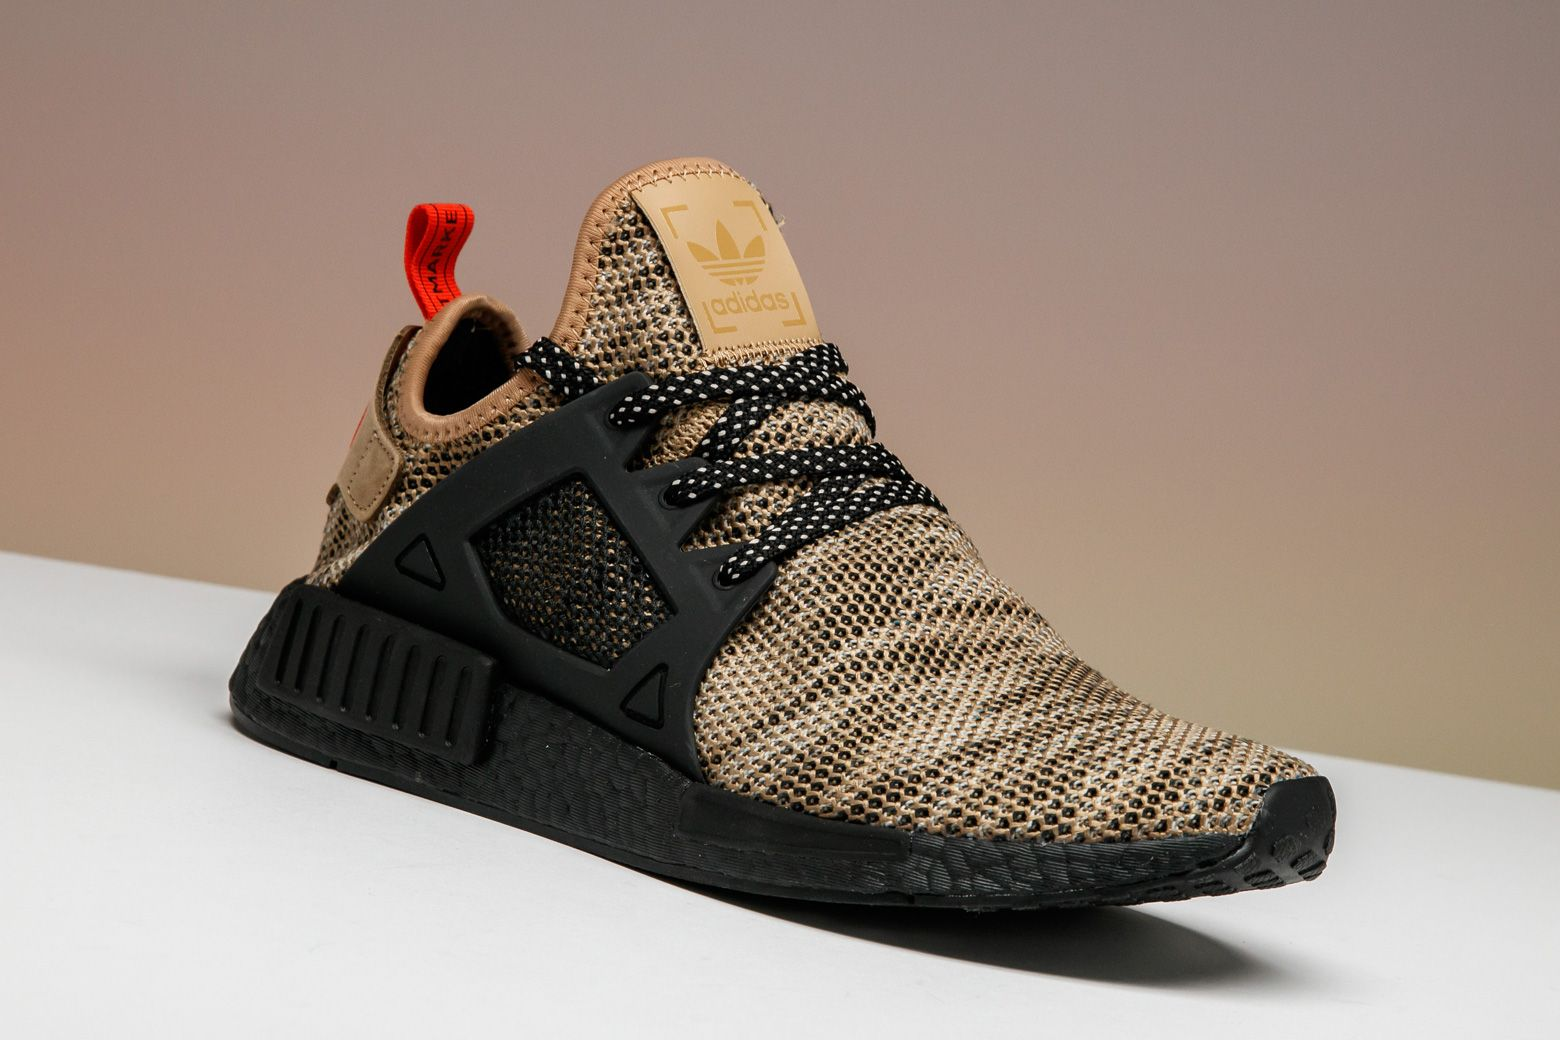 46ad7cd47dfc6 This brown NMD XR1 was released in a trio of Europe-exclusive colorways  early 2017.